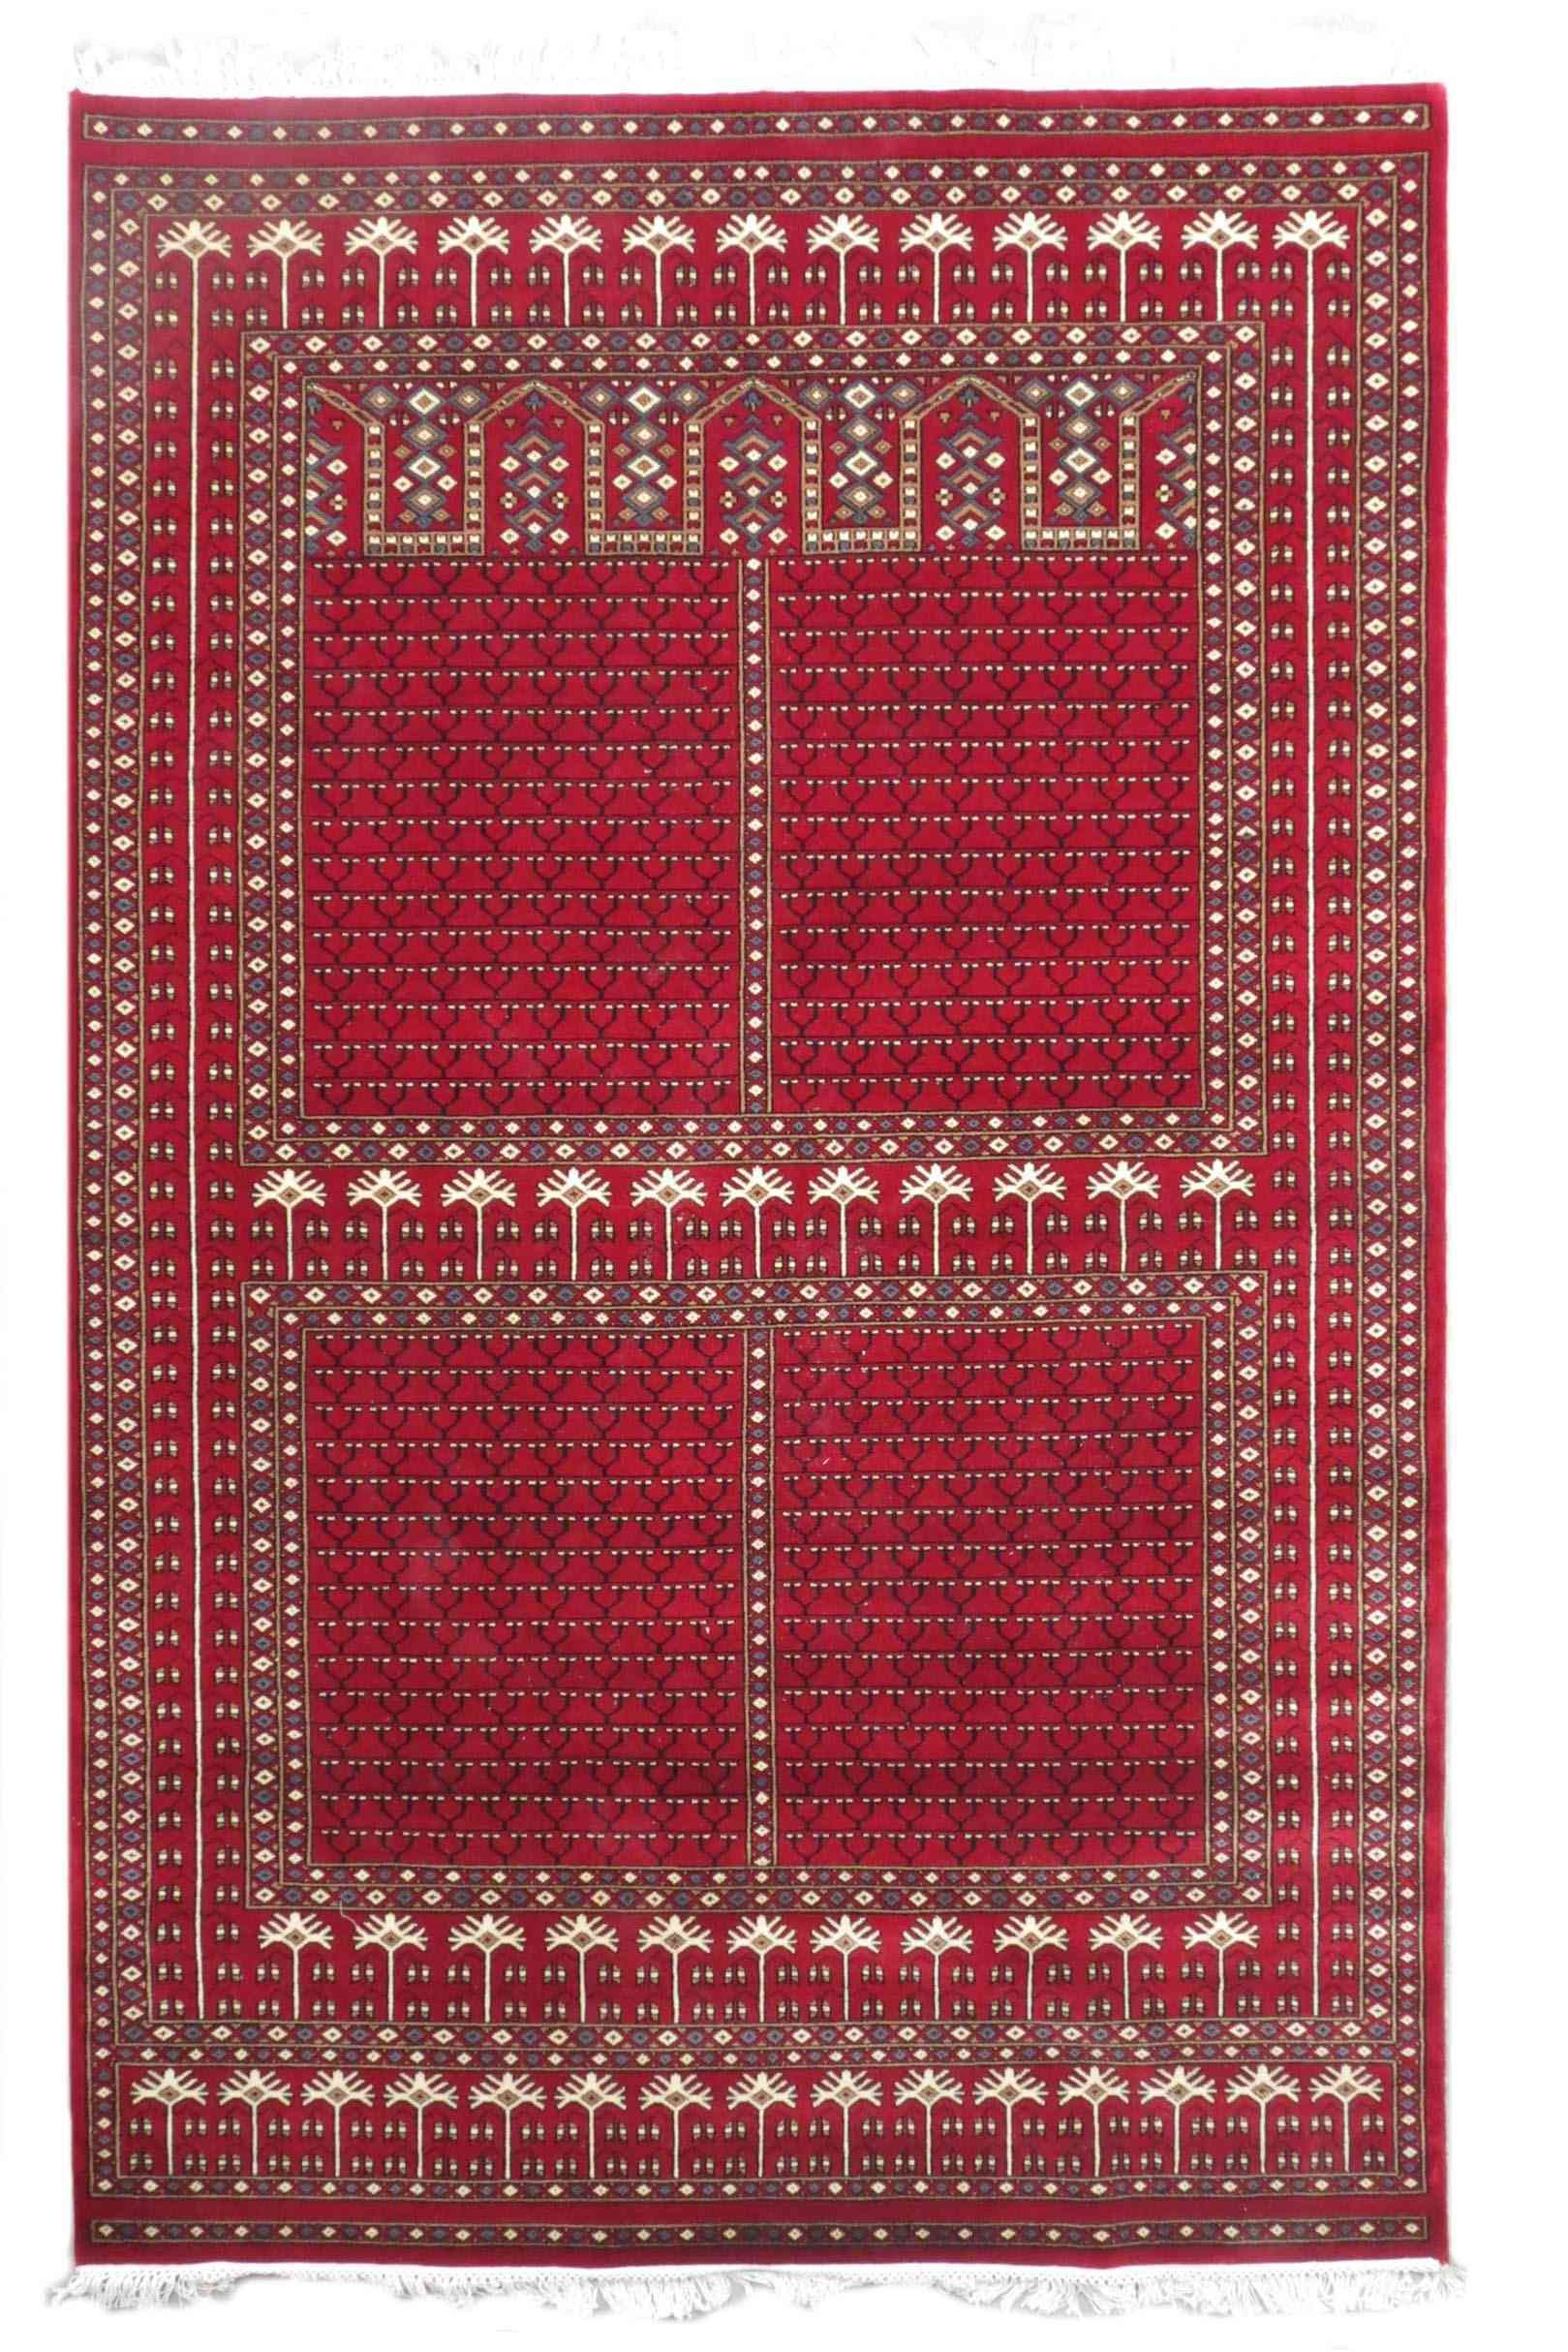 Winds Palace Red Color Jaipur Rugs